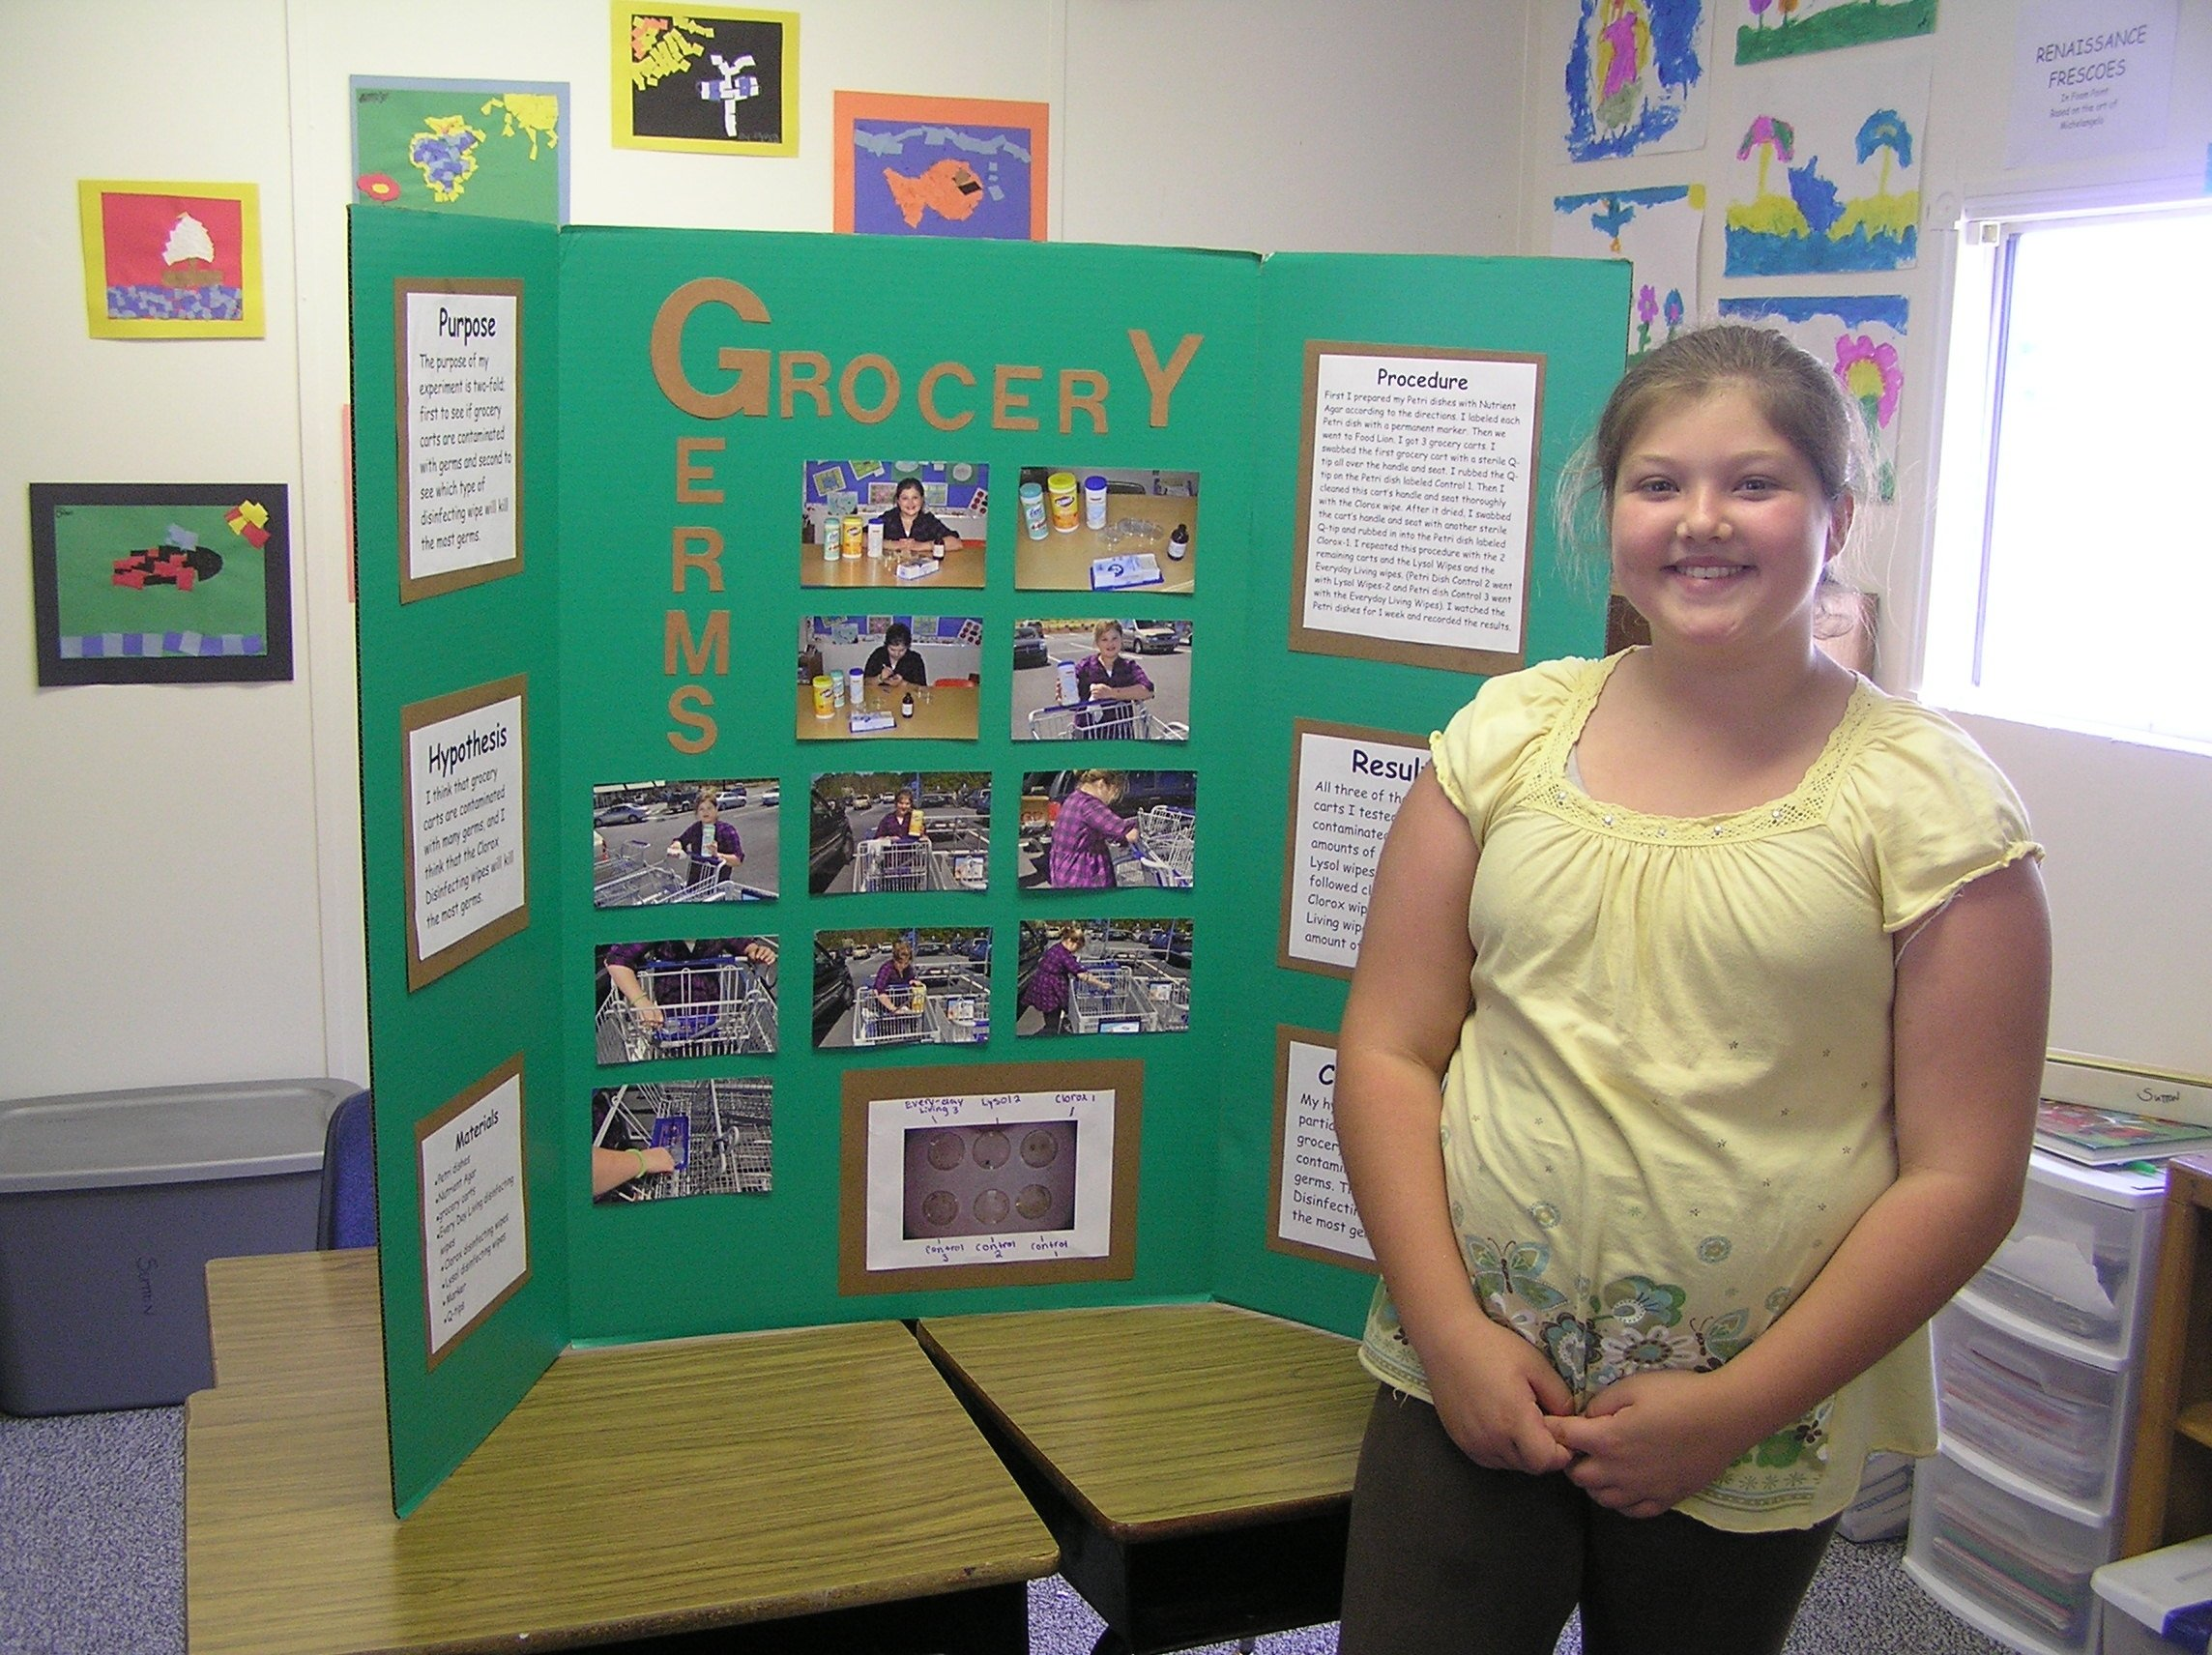 10 Most Popular Science Project Ideas For 5Th Graders grocery germs whats on that cart handle science fair 20 2020